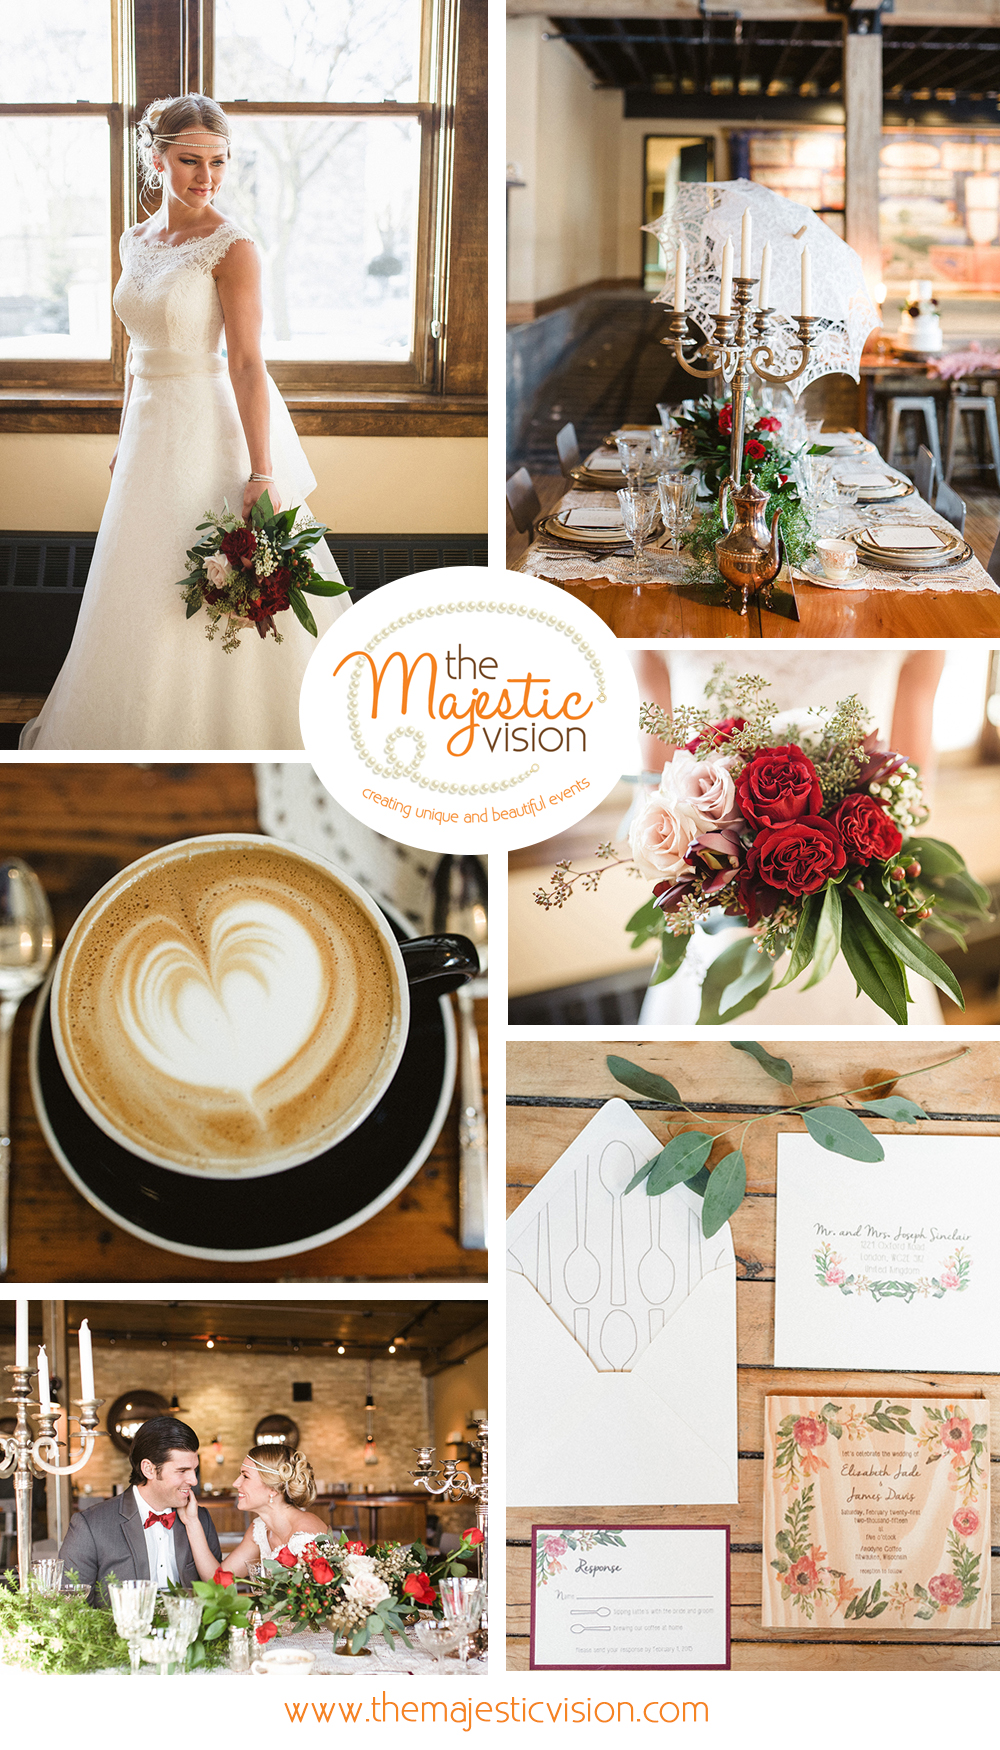 Elegant Marsala Coffee Shop Wedding | The Majestic Vision Wedding Planning | Anodyne Coffee in Milwaukee, WI | www.themajesticvision.com | Elizabeth Haase Photography